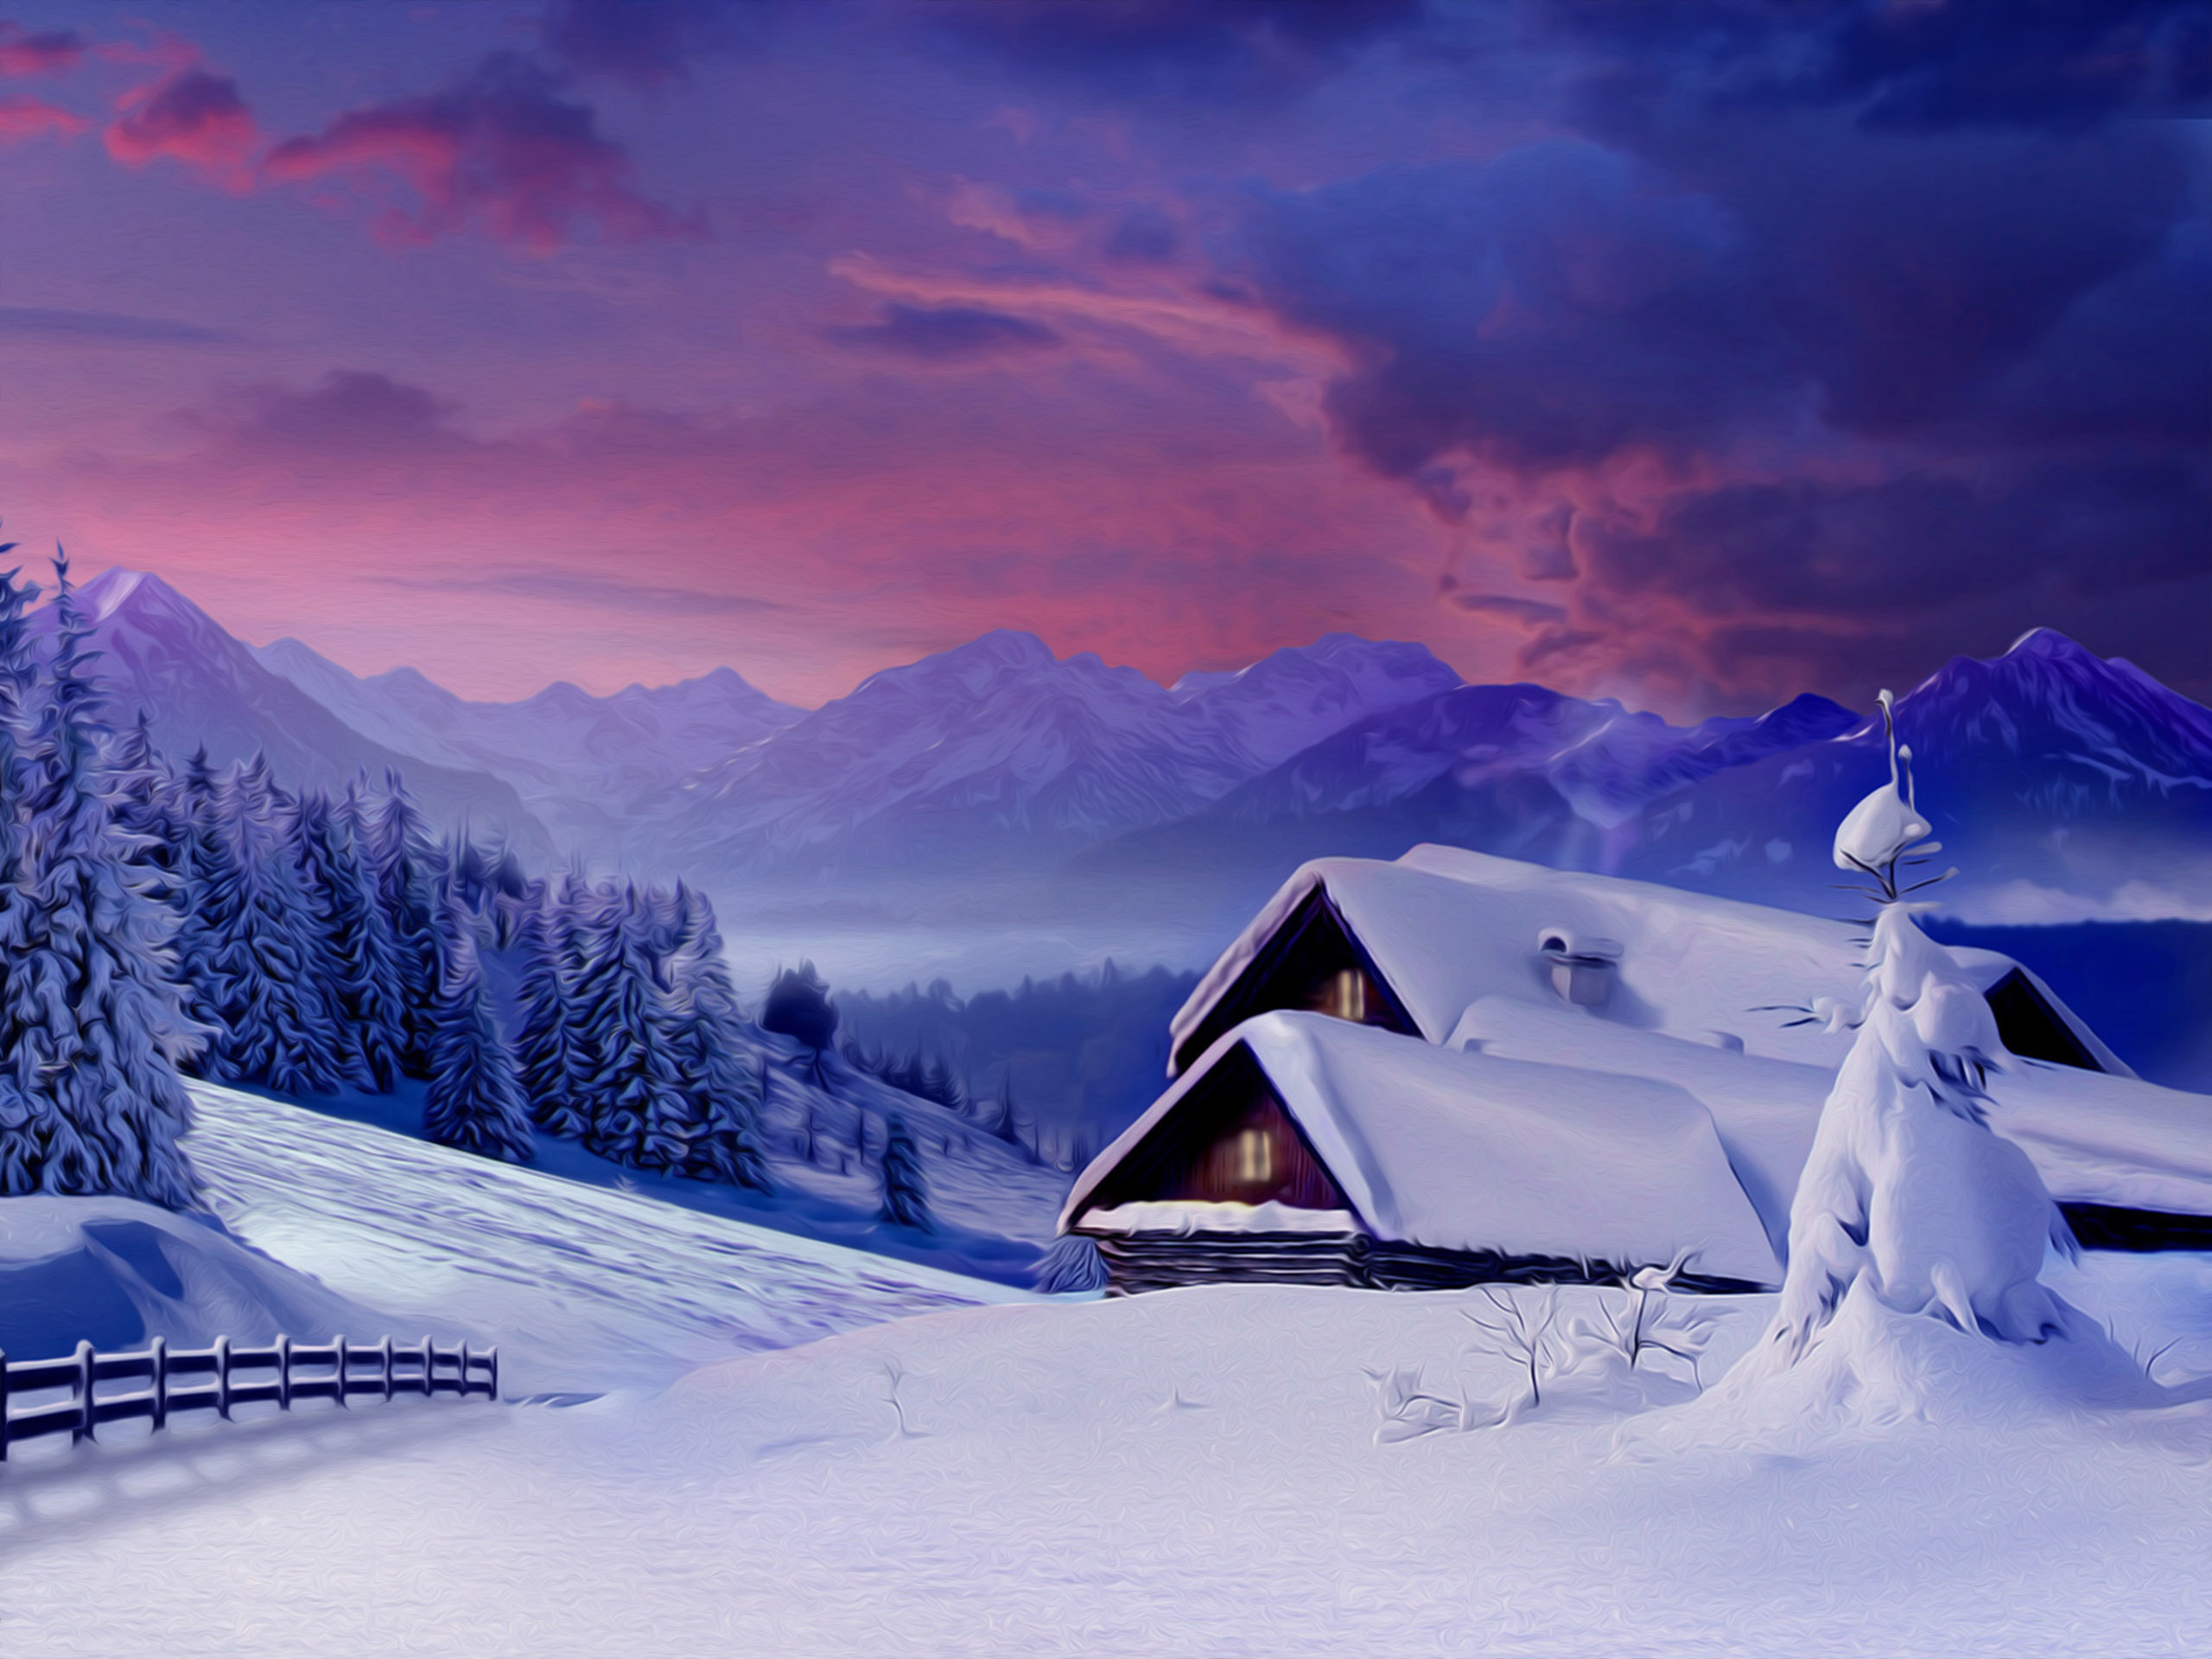 snow scenery full hd - photo #42